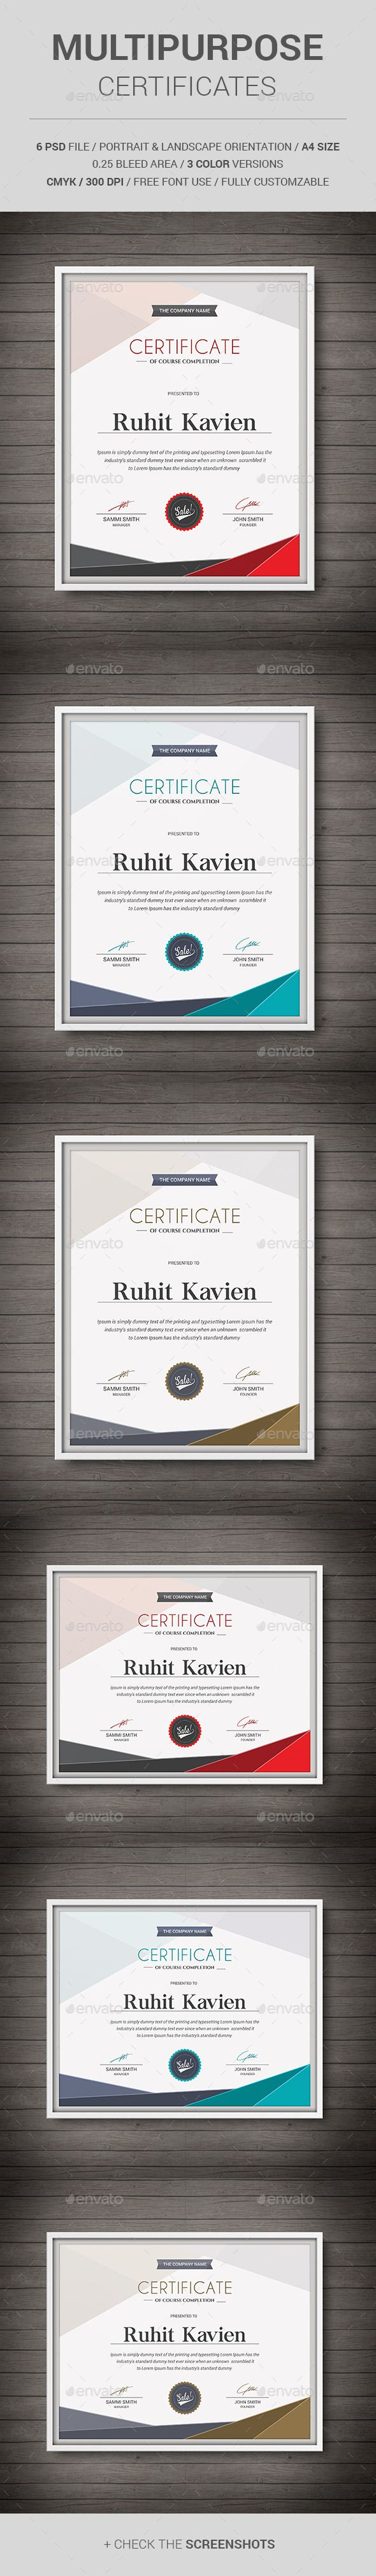 89 best certificate of merit images on pinterest certificate multipurpose certificates template psd download here httpgraphicriver yadclub Choice Image